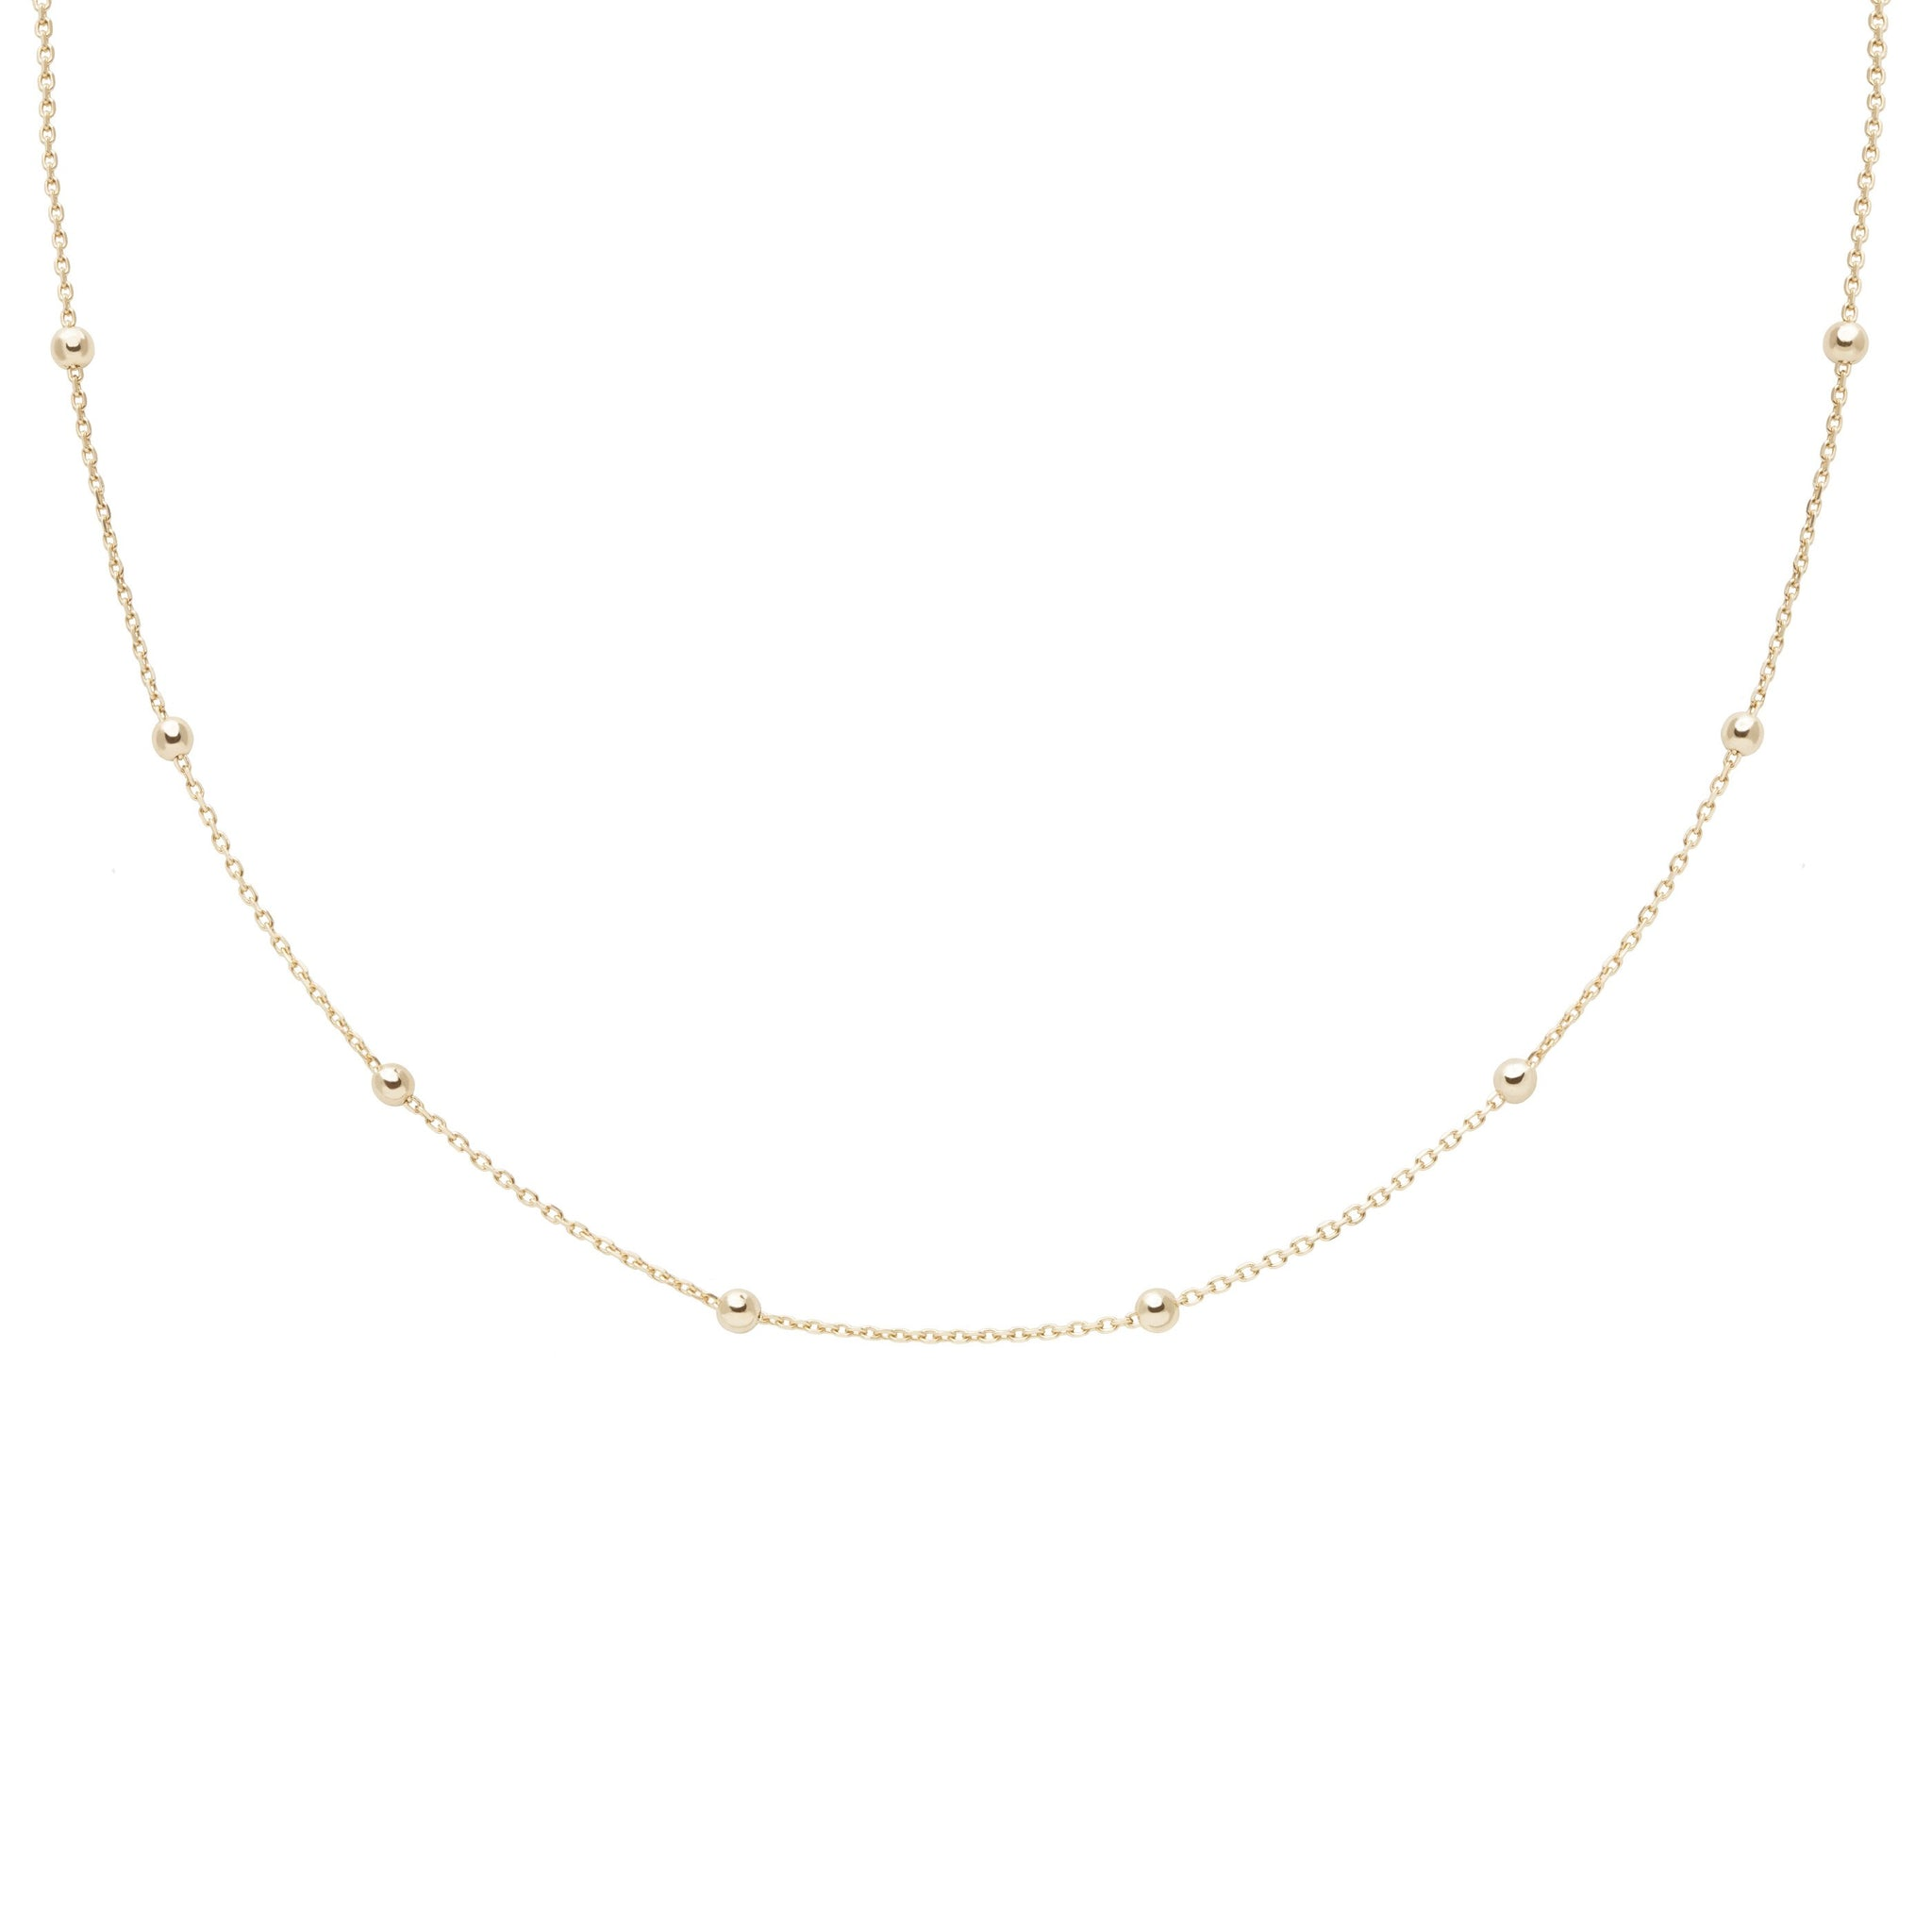 Basic Large Beaded Choker in Gold